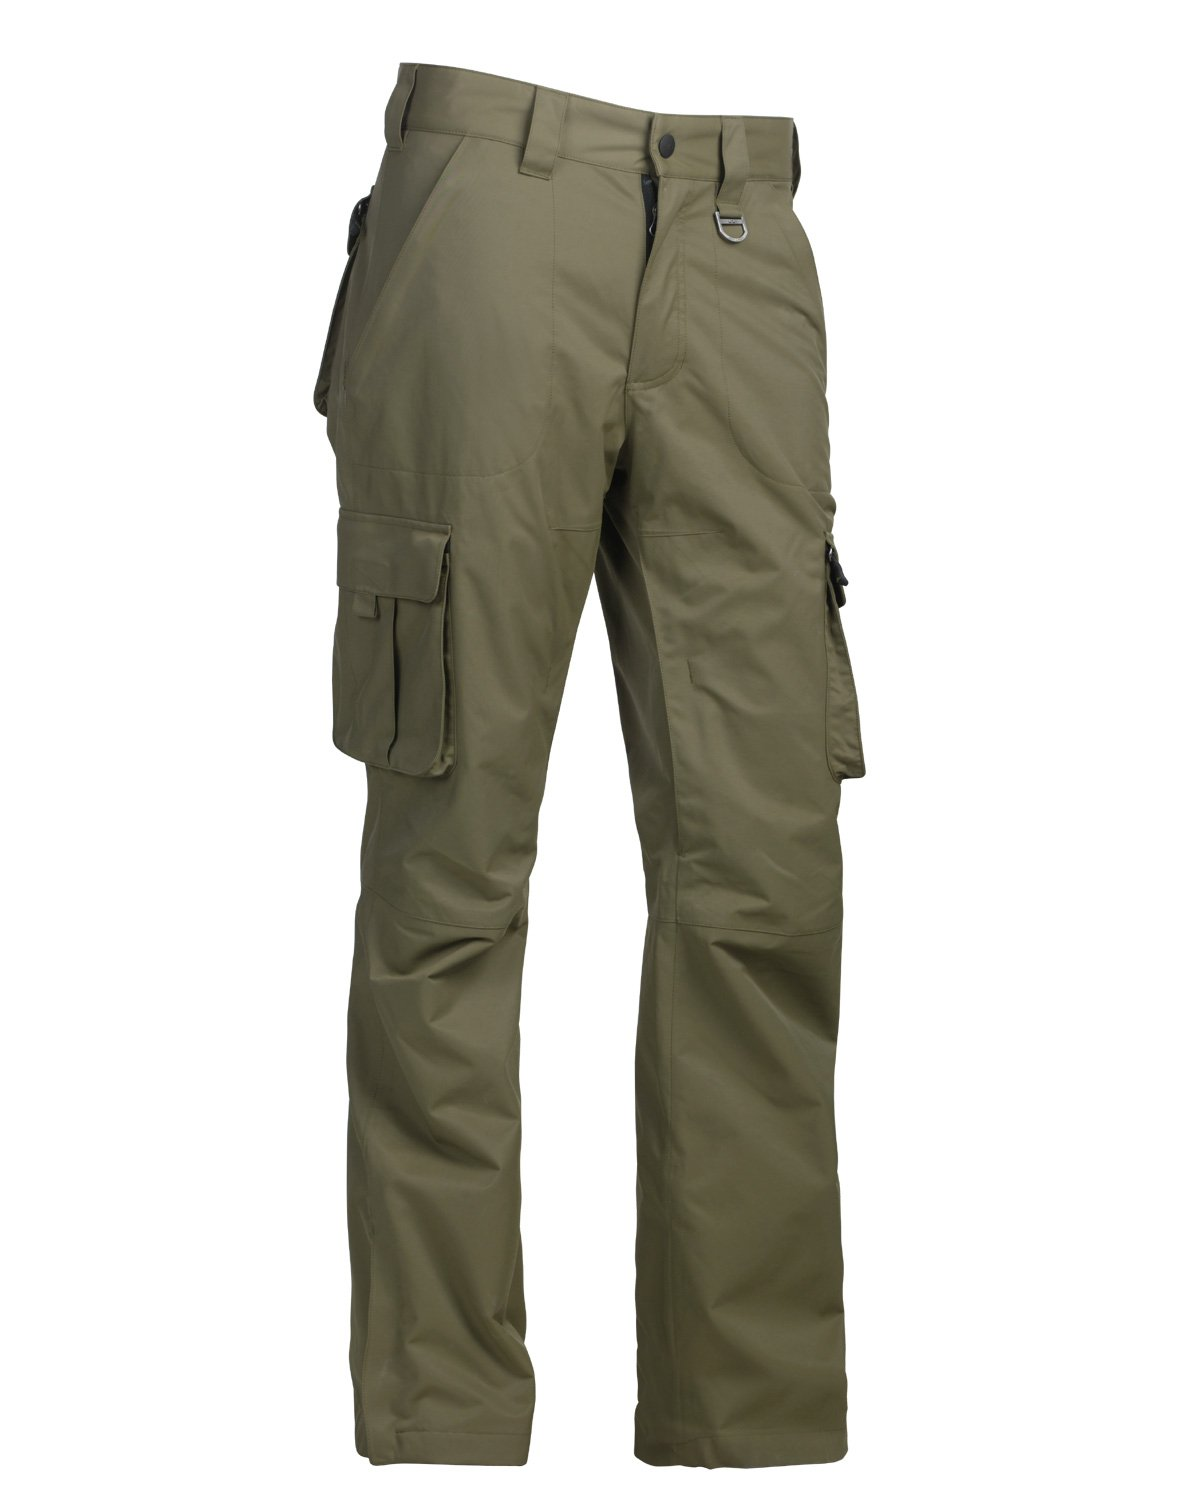 Jeff Green Herren Outdoorhose Tampere, Black, 50, 1356-BL